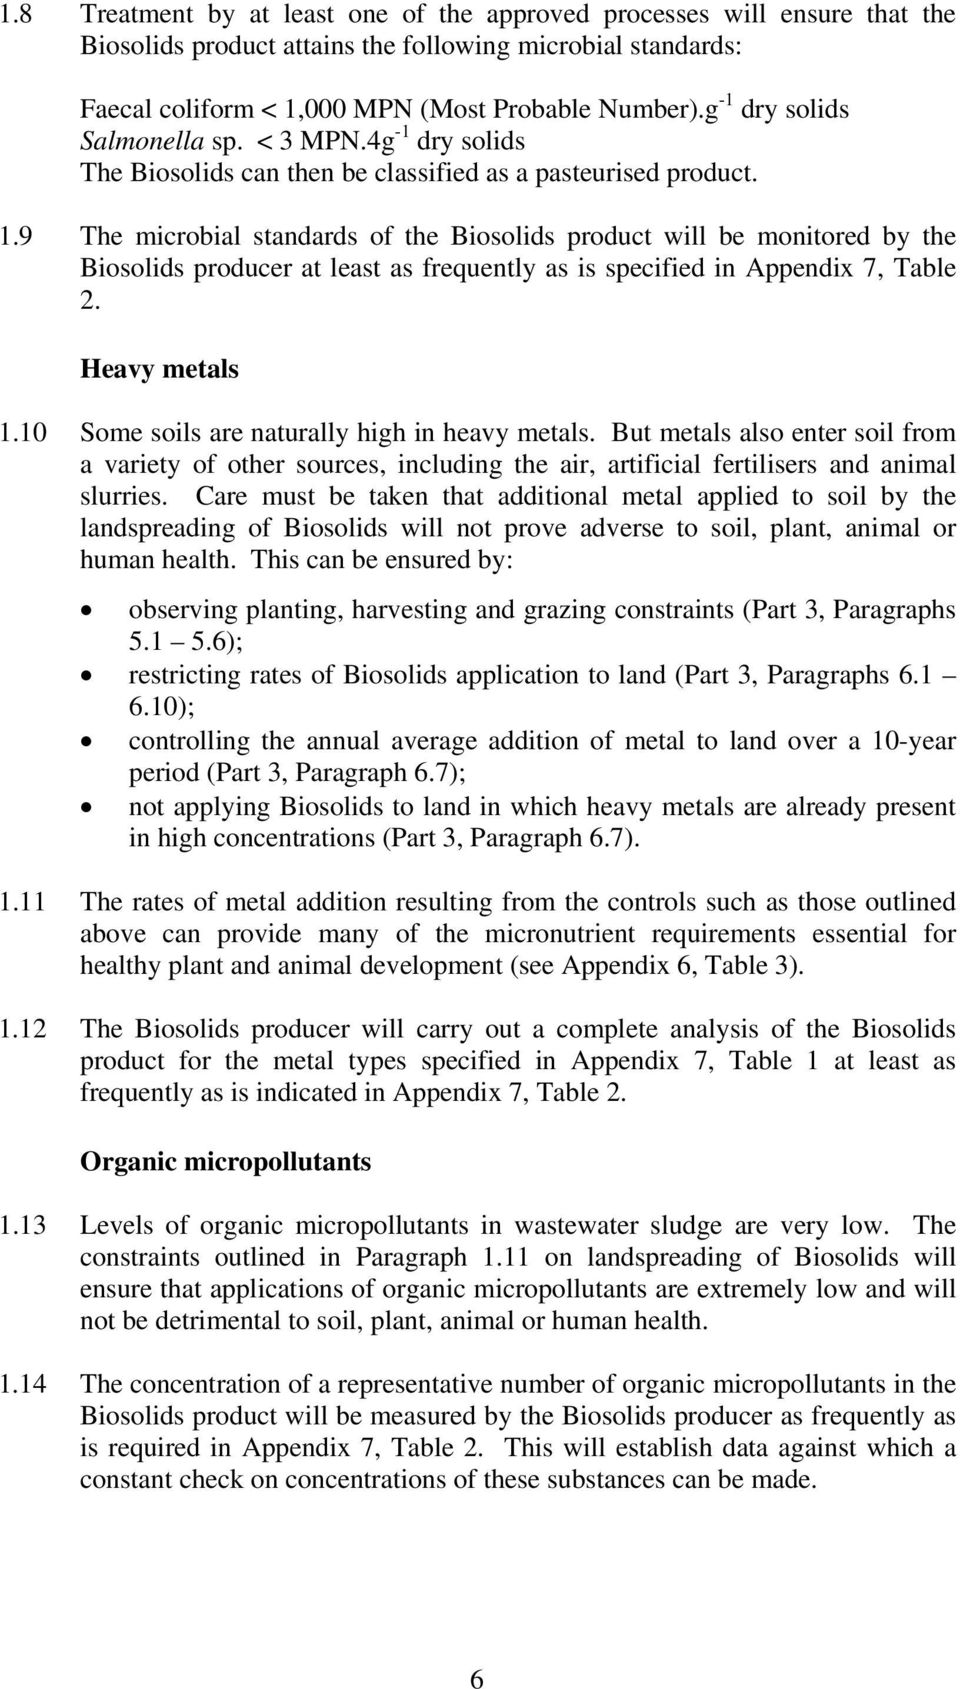 9 The microbial standards of the Biosolids product will be monitored by the Biosolids producer at least as frequently as is specified in Appendix 7, Table 2. Heavy metals 1.